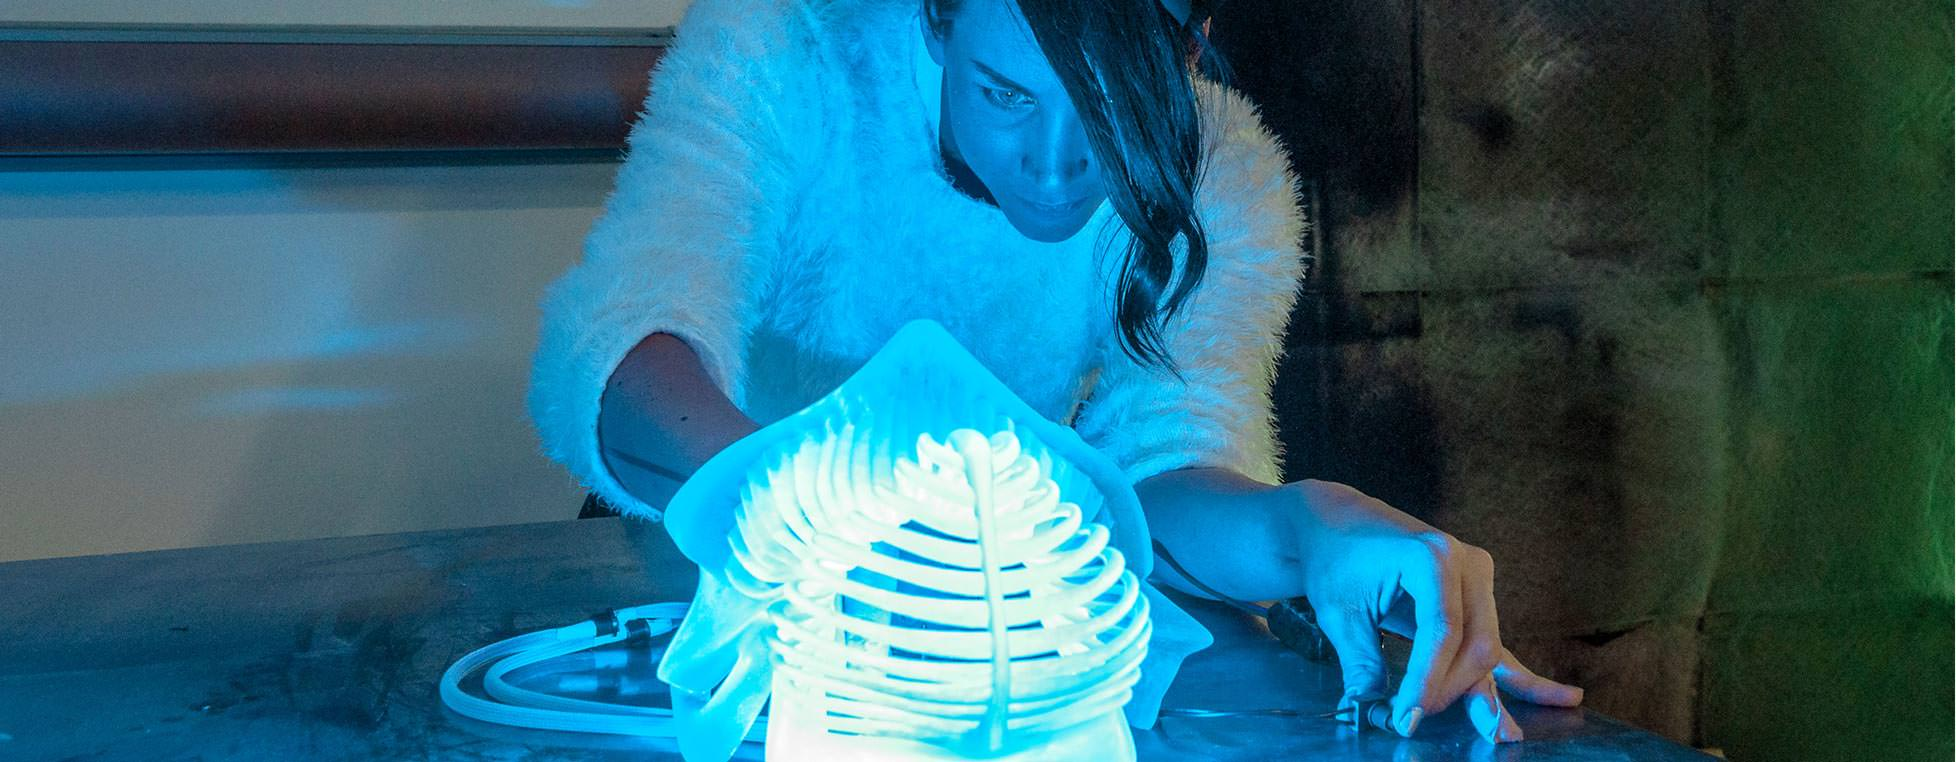 Image of a maker working on a blue, glowing model using Autodesk products.